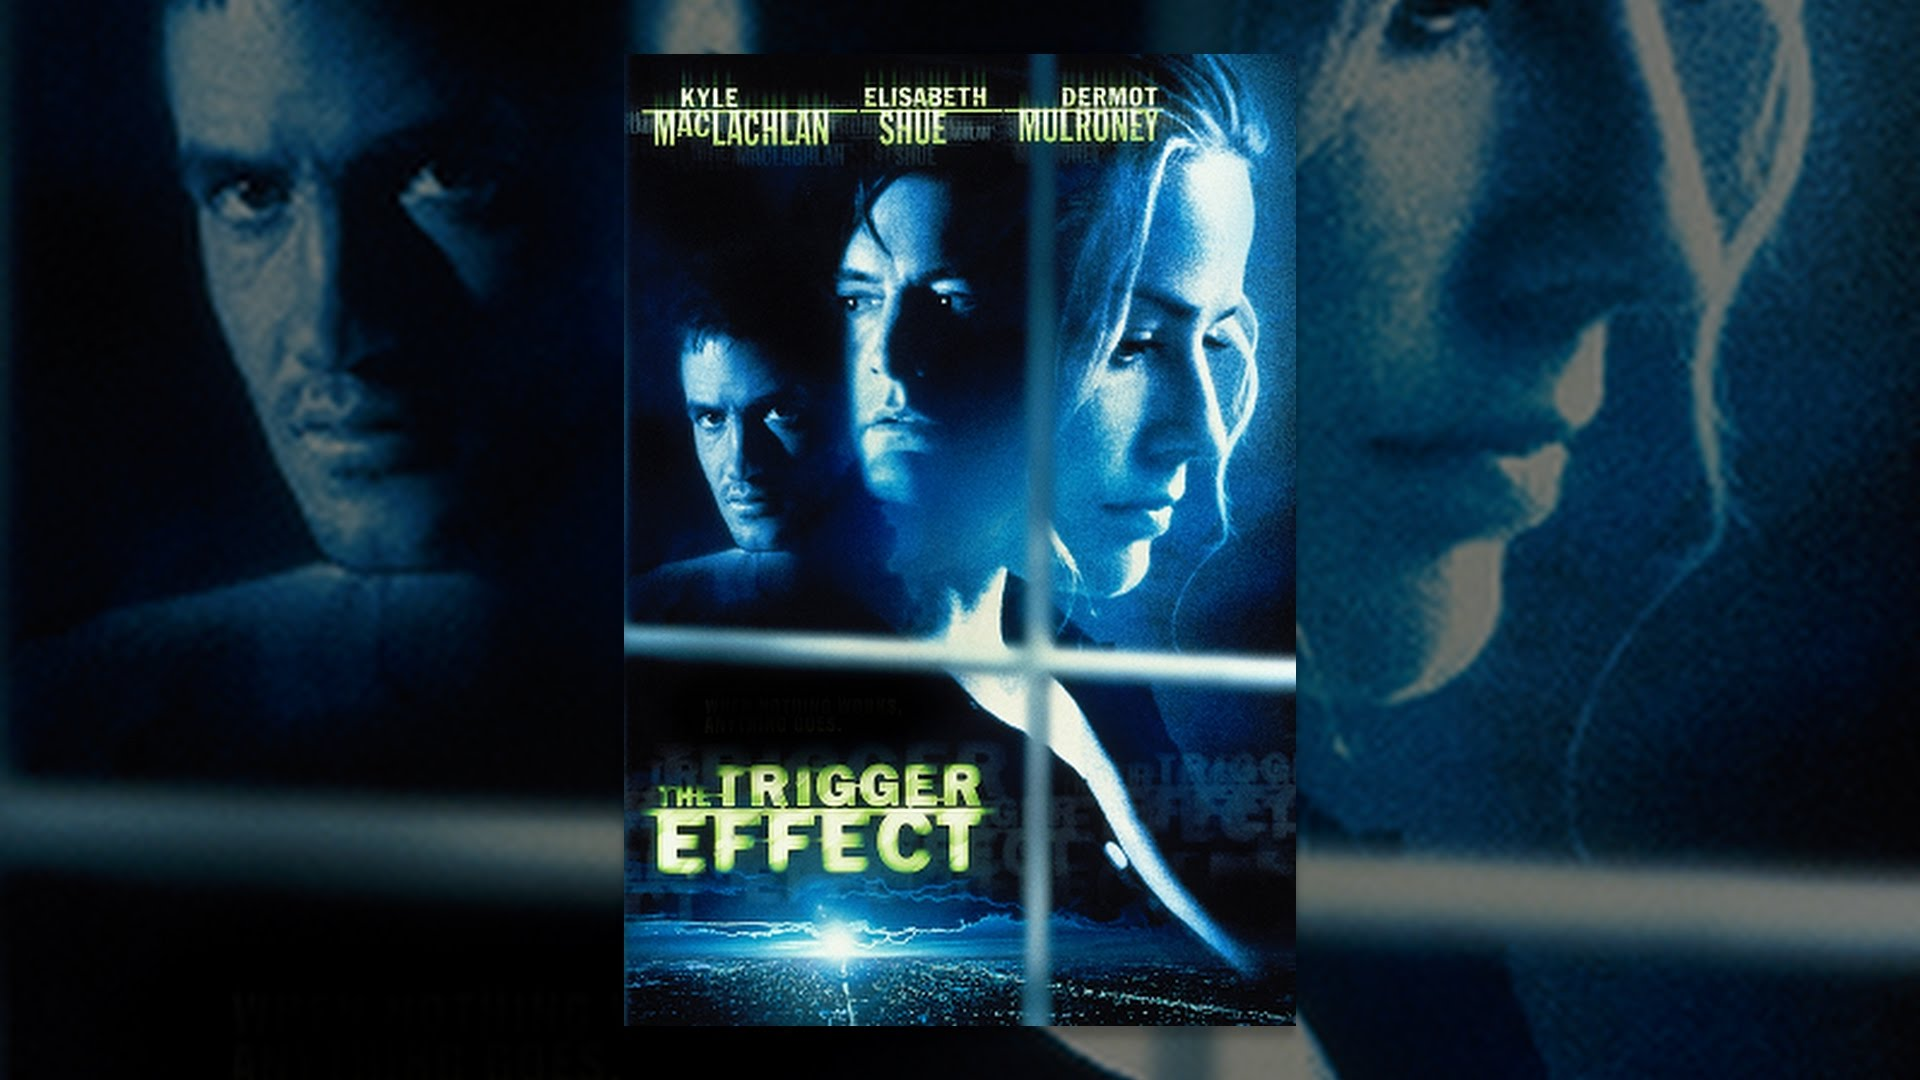 an analysis of the film the trigger effect